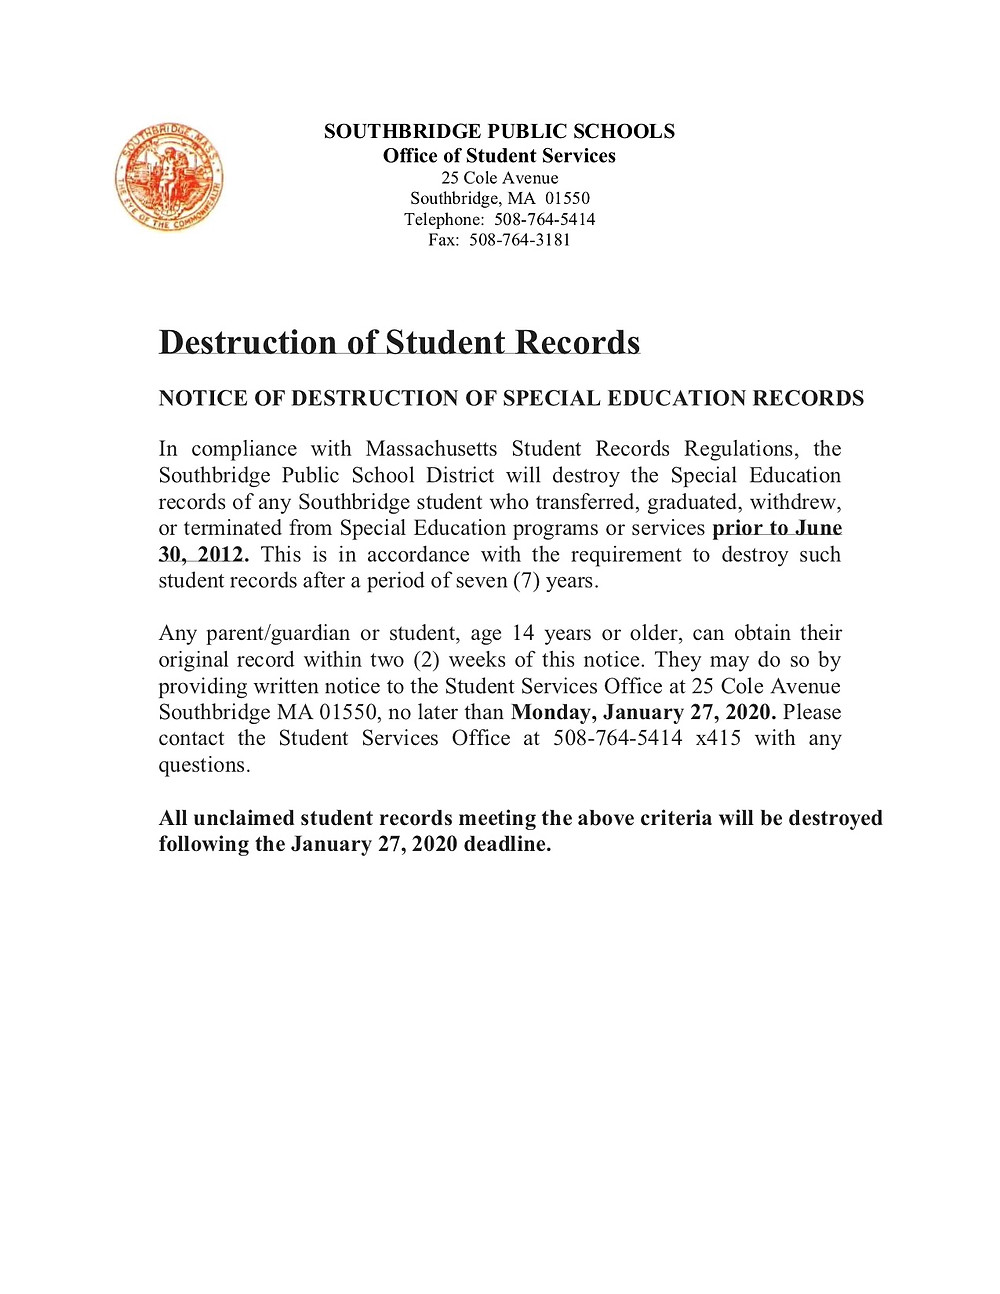 Image of letter regarding student records with link to the document